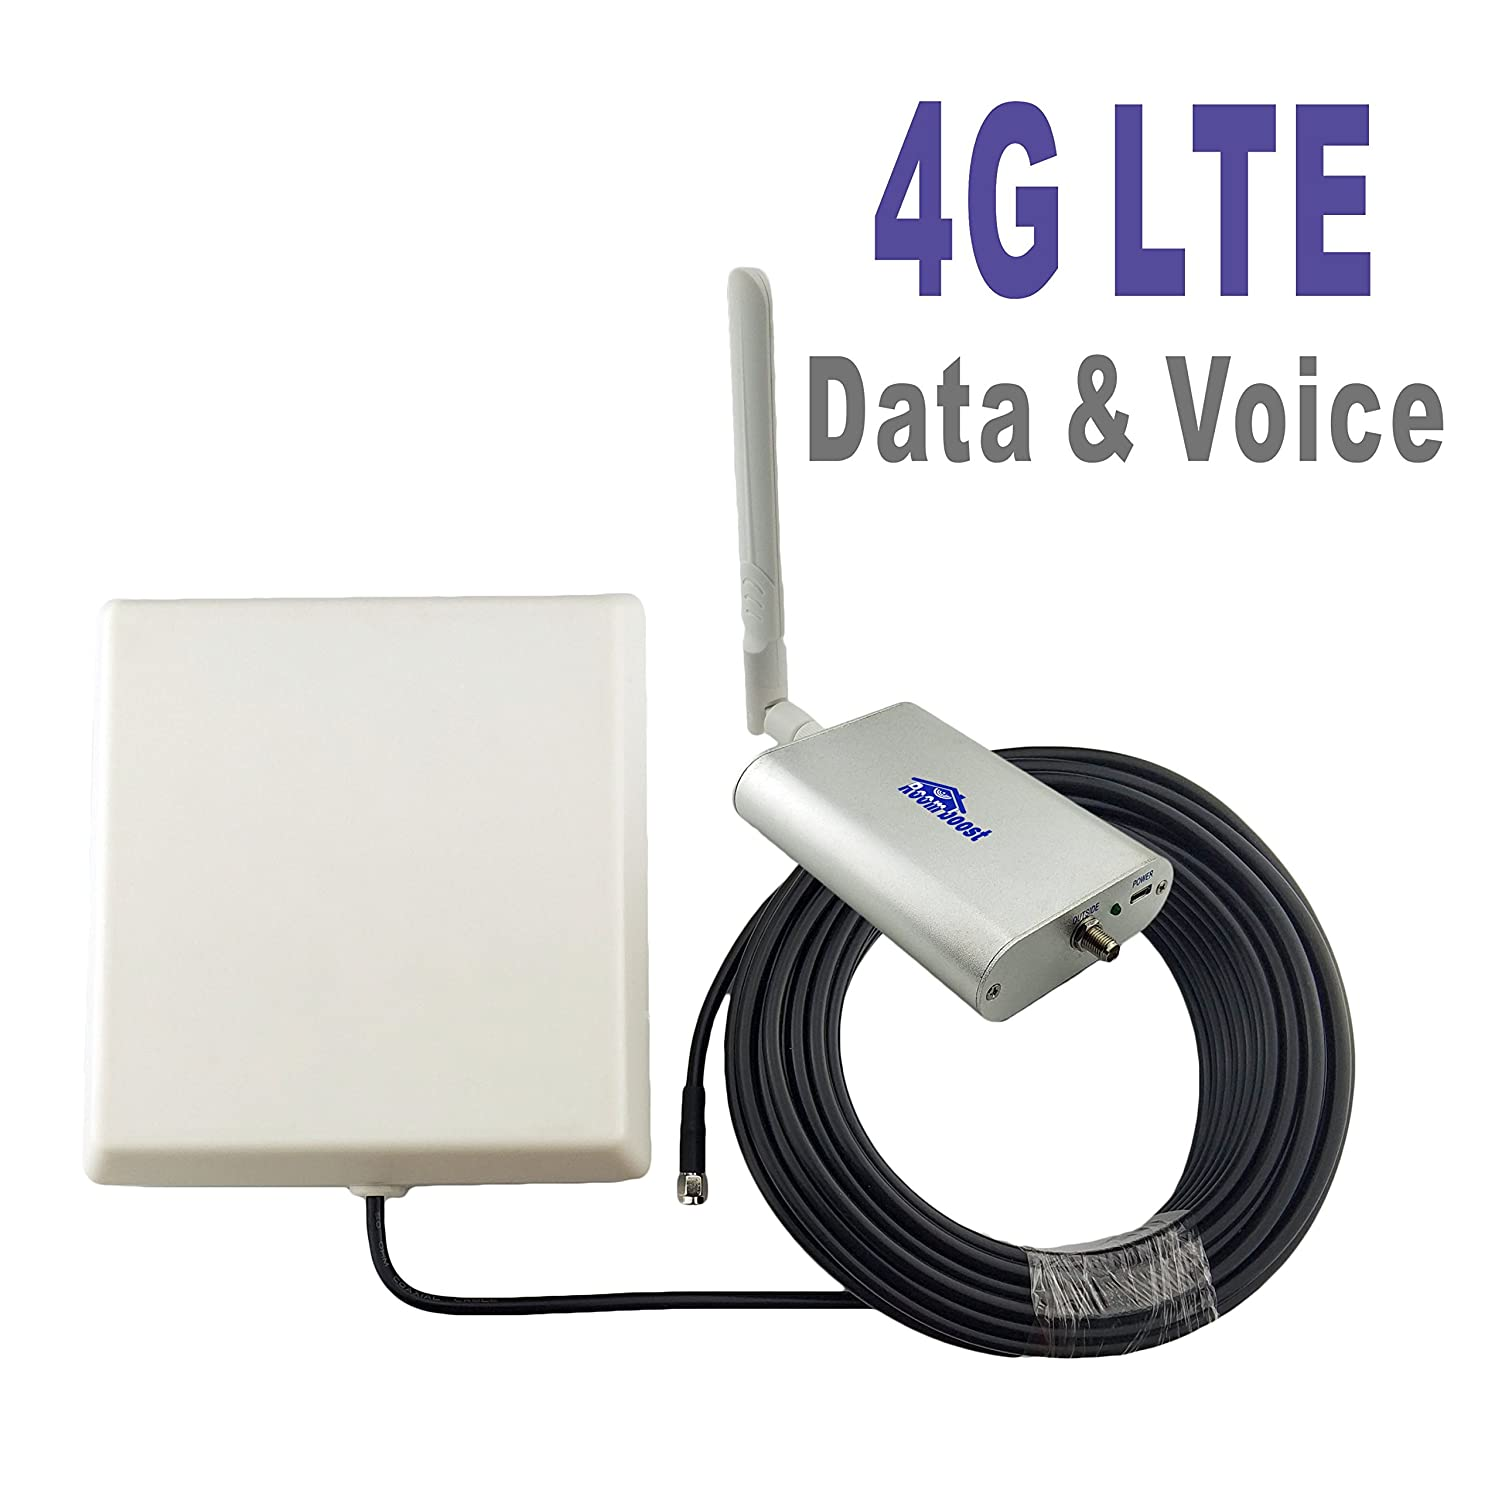 Roomboost AT&T T-Mobile Cell Phone Signal Booster for Home and Office 4G LTE Band12/17 Mobile Phone Signal Amplifier Including RG58 Cable 700MHz Repeater Full Kit HT-P-A002